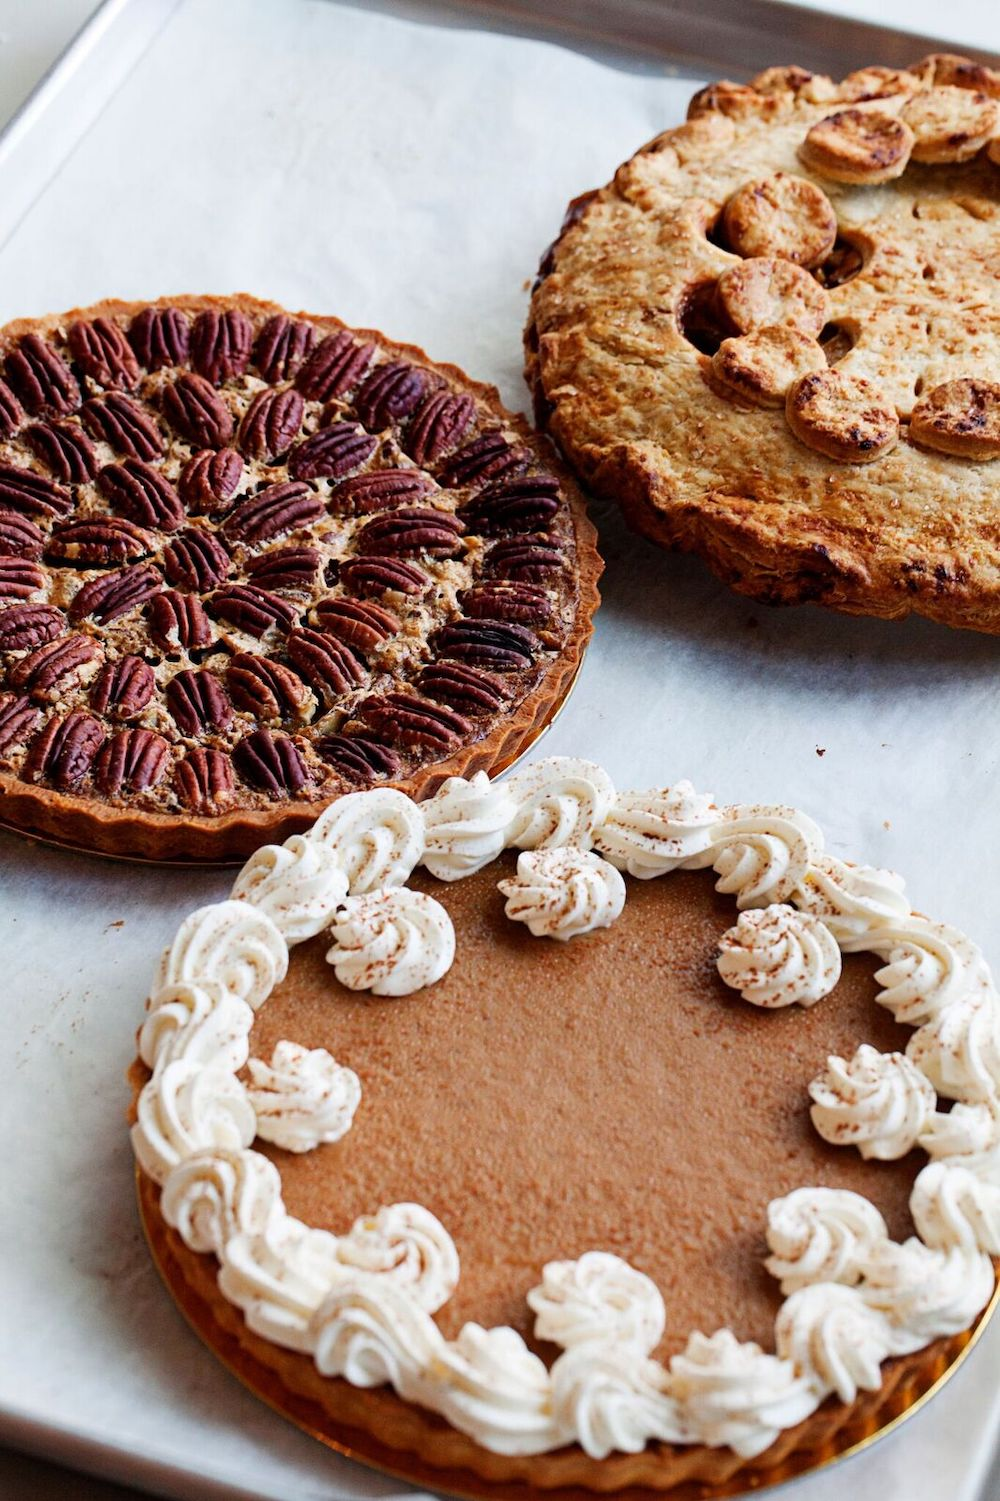 Cadeaux Bakery Primed for Thanksgiving With Special Pies, Tarts, Croissants and More